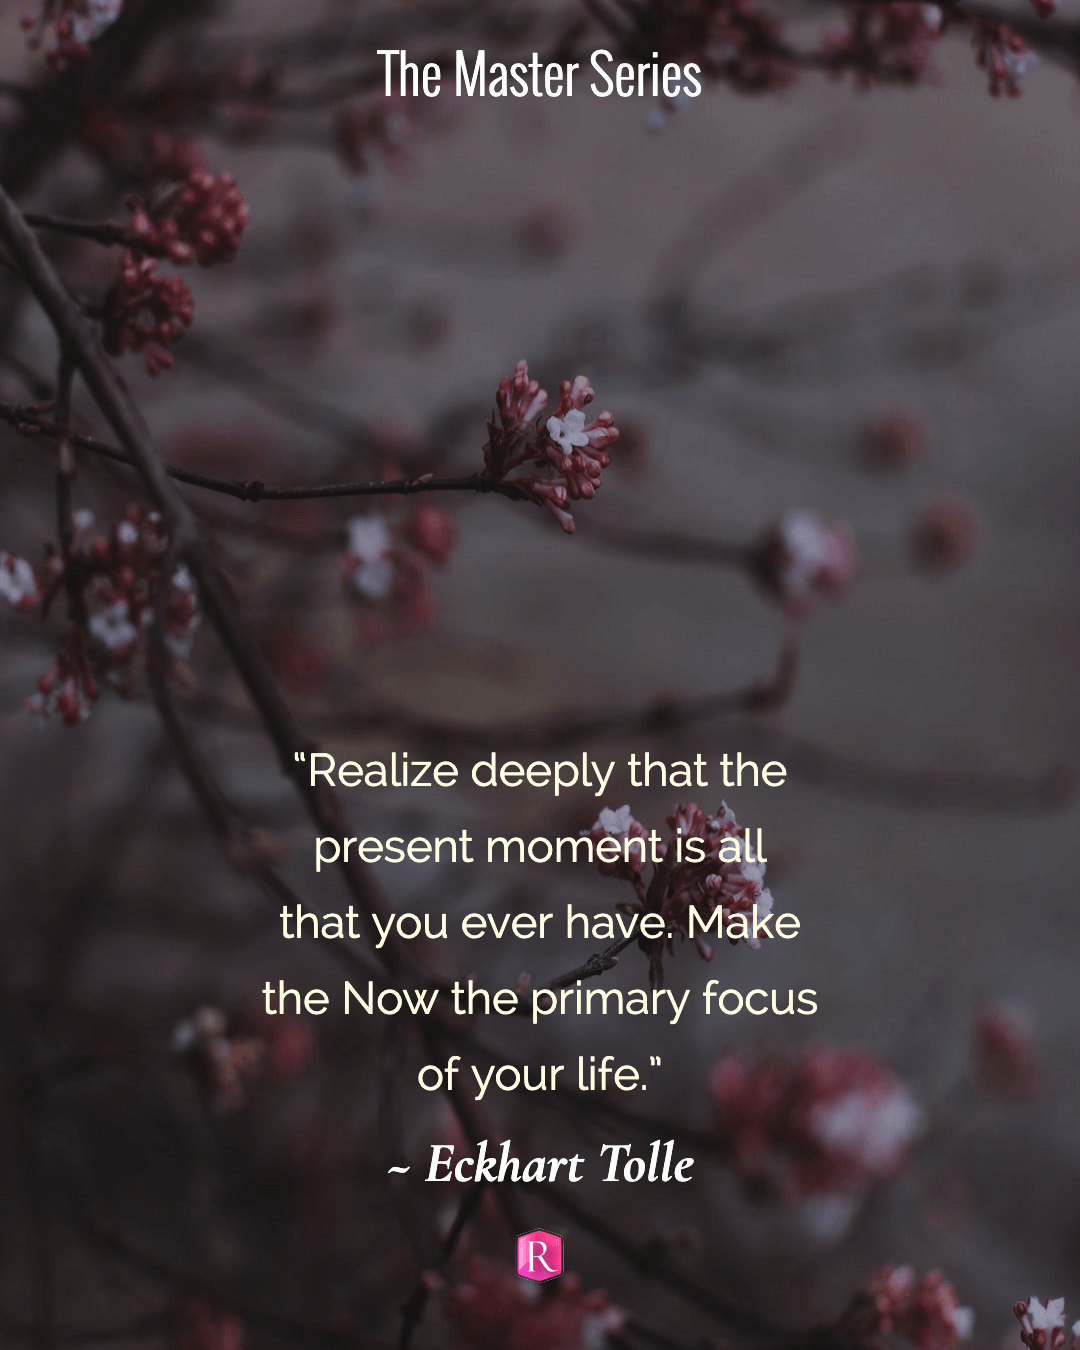 """""""Realize deeply that the present moment is all that you ever have. Make the Now the primary focus of your life."""" Eckhart Tolle"""